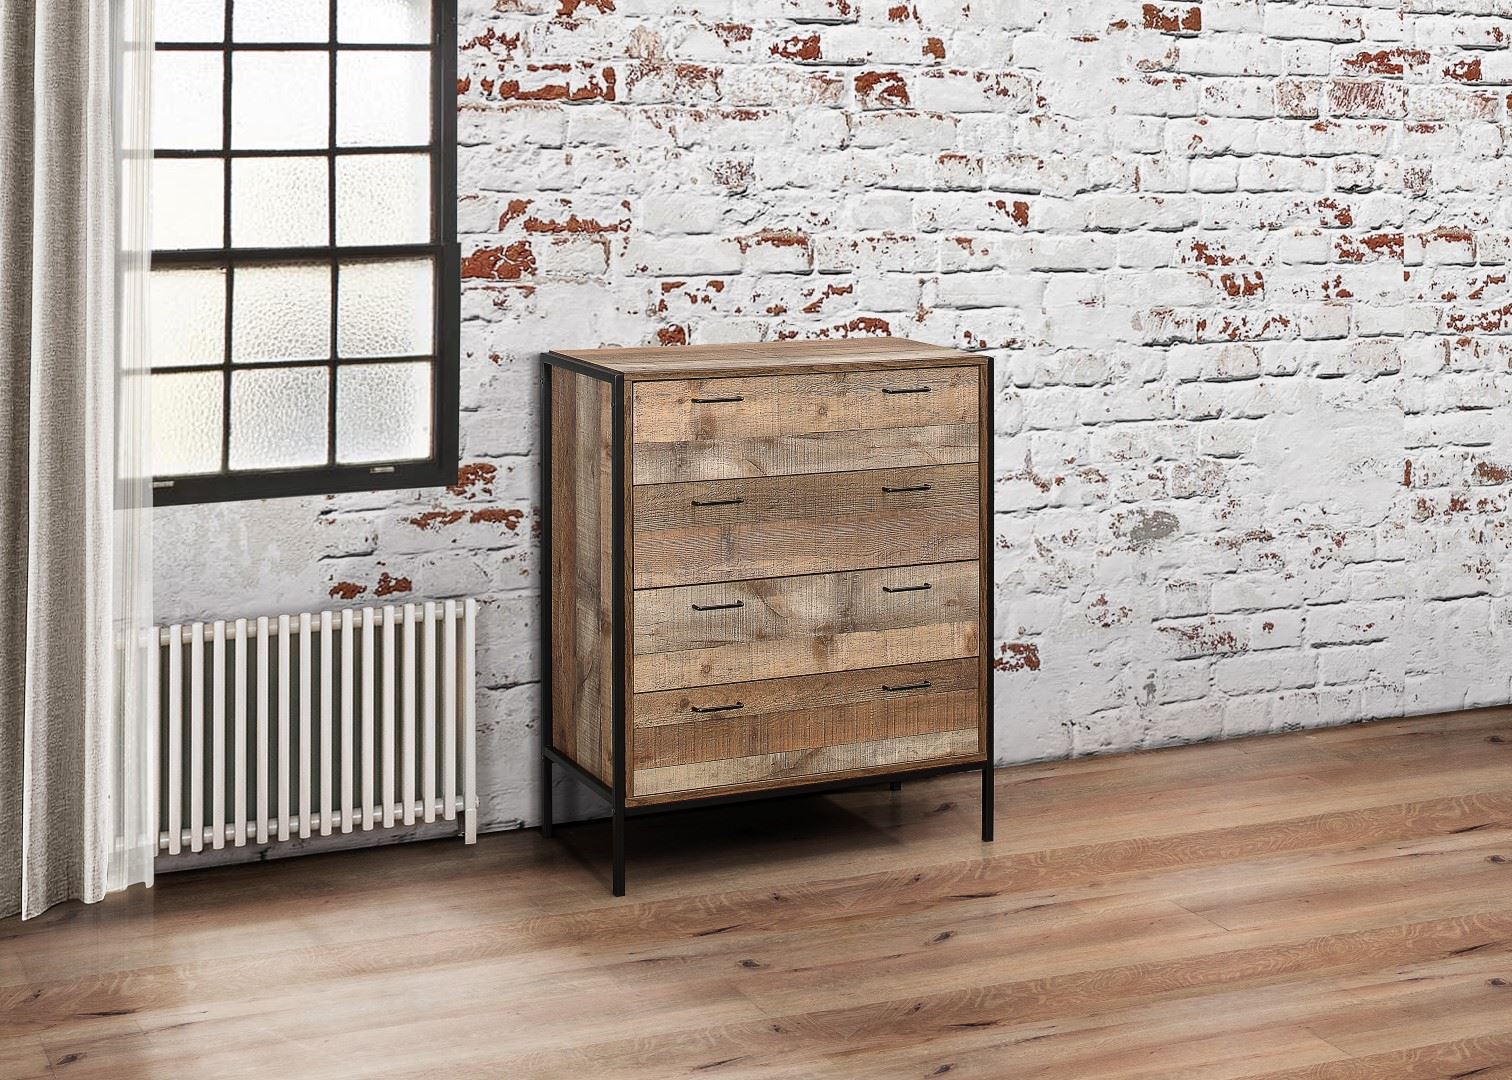 Birlea Urban Industrial Chic 4 Drawer Medium Chest Wood Metal